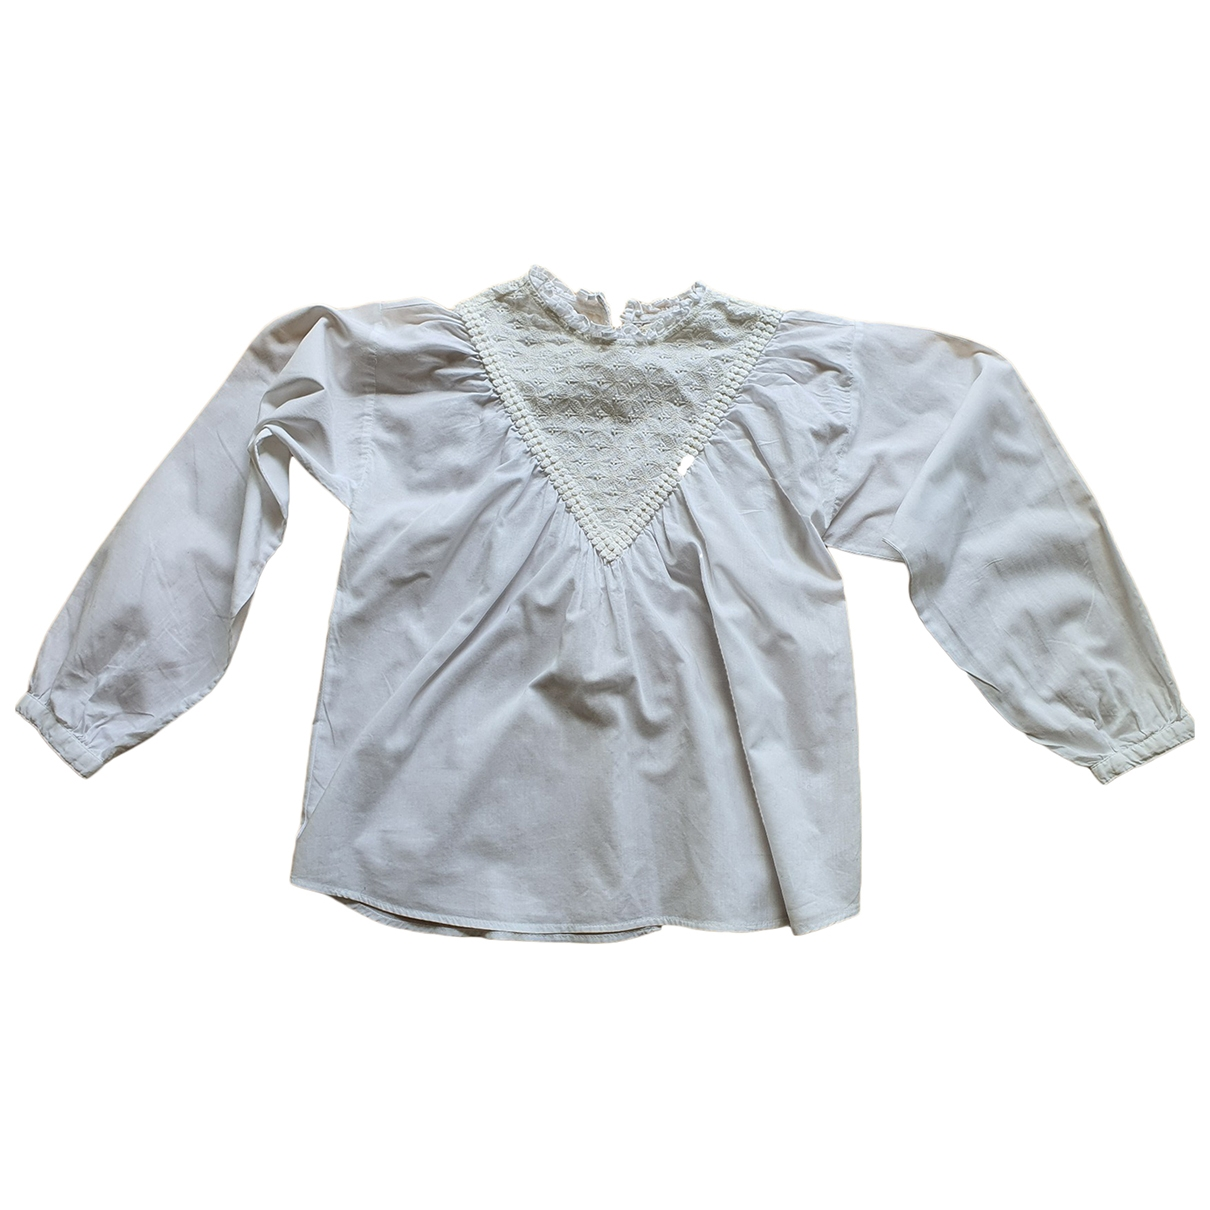 Zara \N White Cotton  top for Kids 10 years - up to 142cm FR